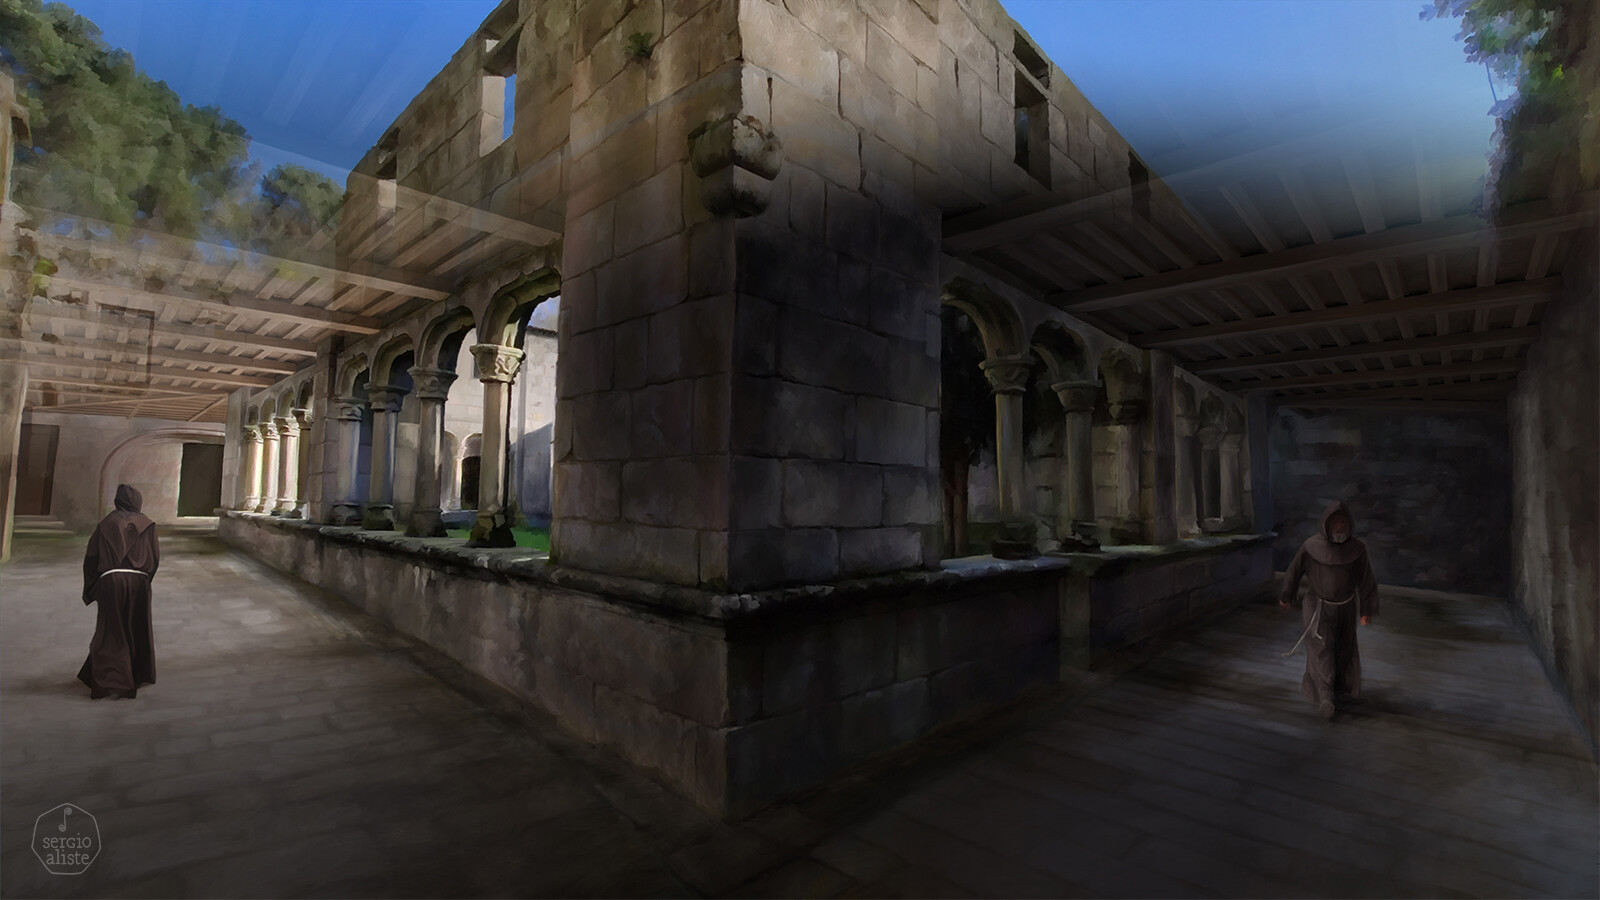 Reconstruction of a 16th century Franciscan cloister